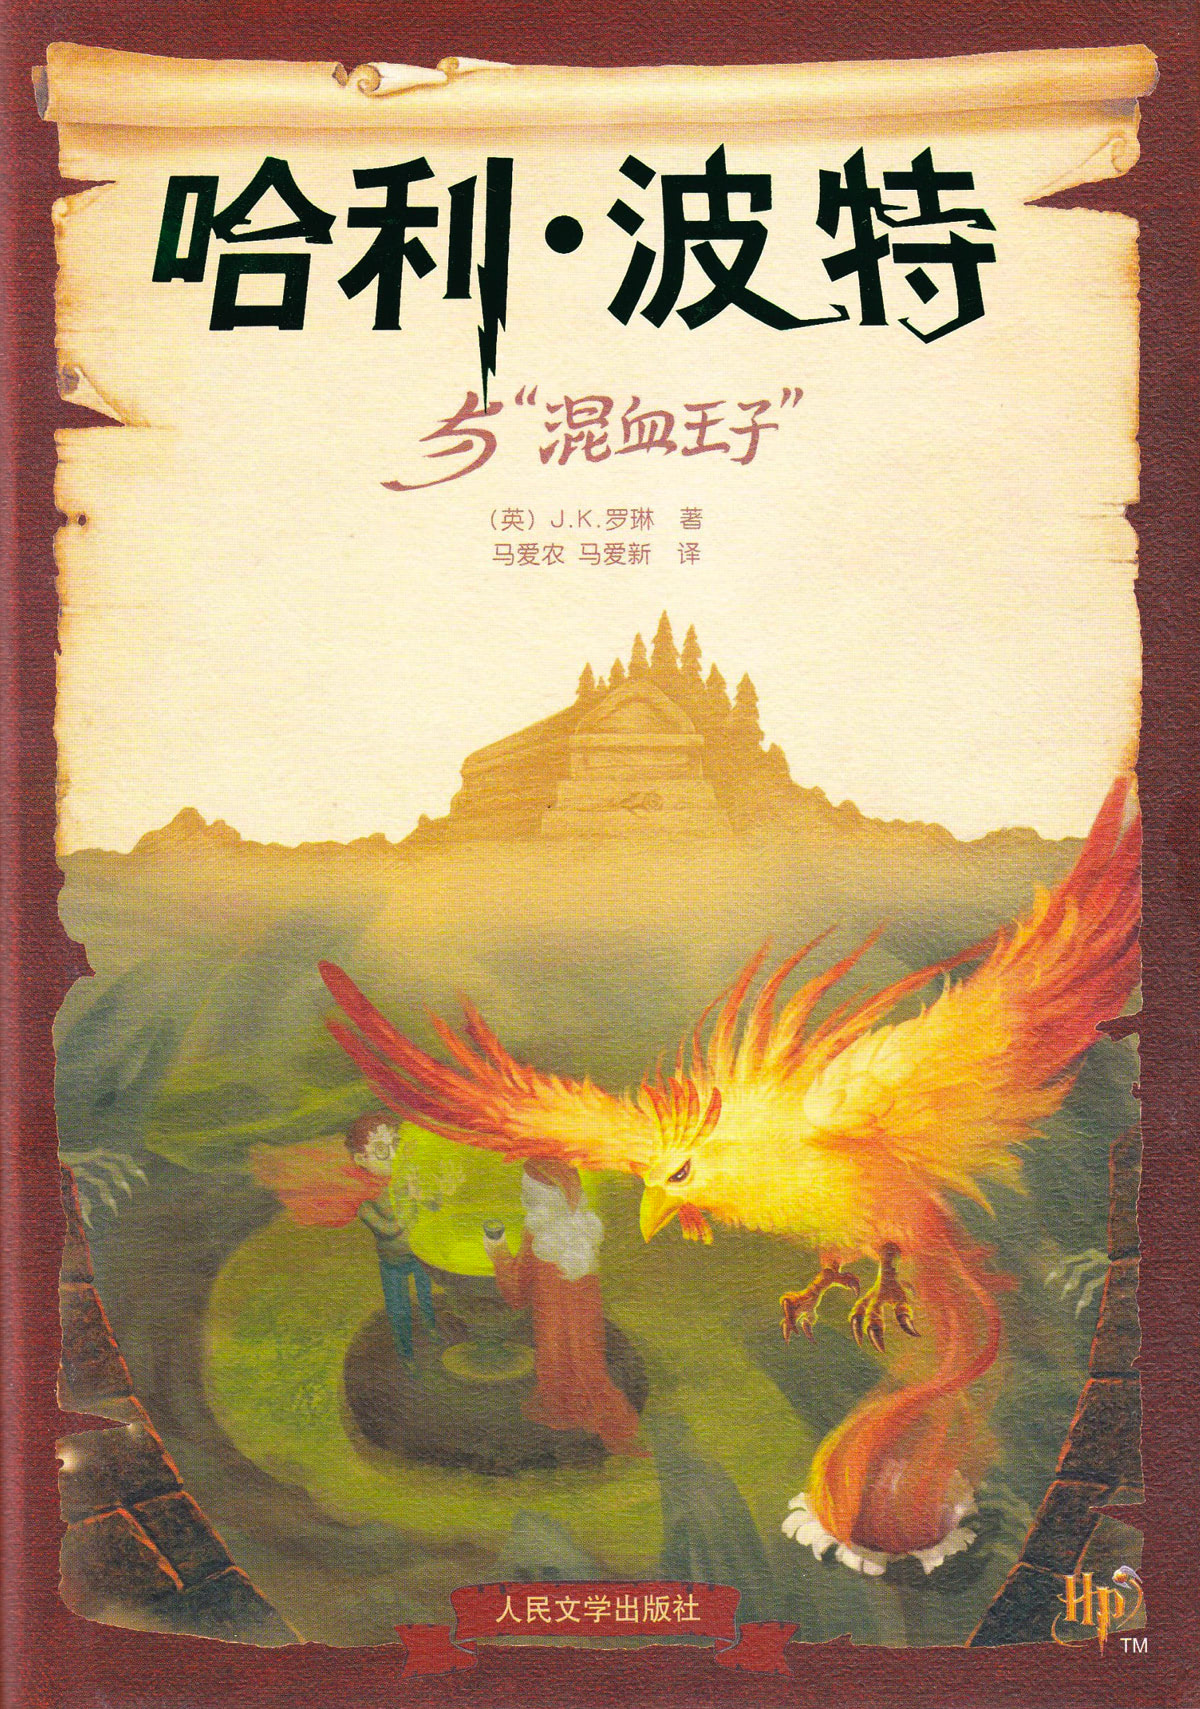 'Half-Blood Prince' Chinese collector's edition